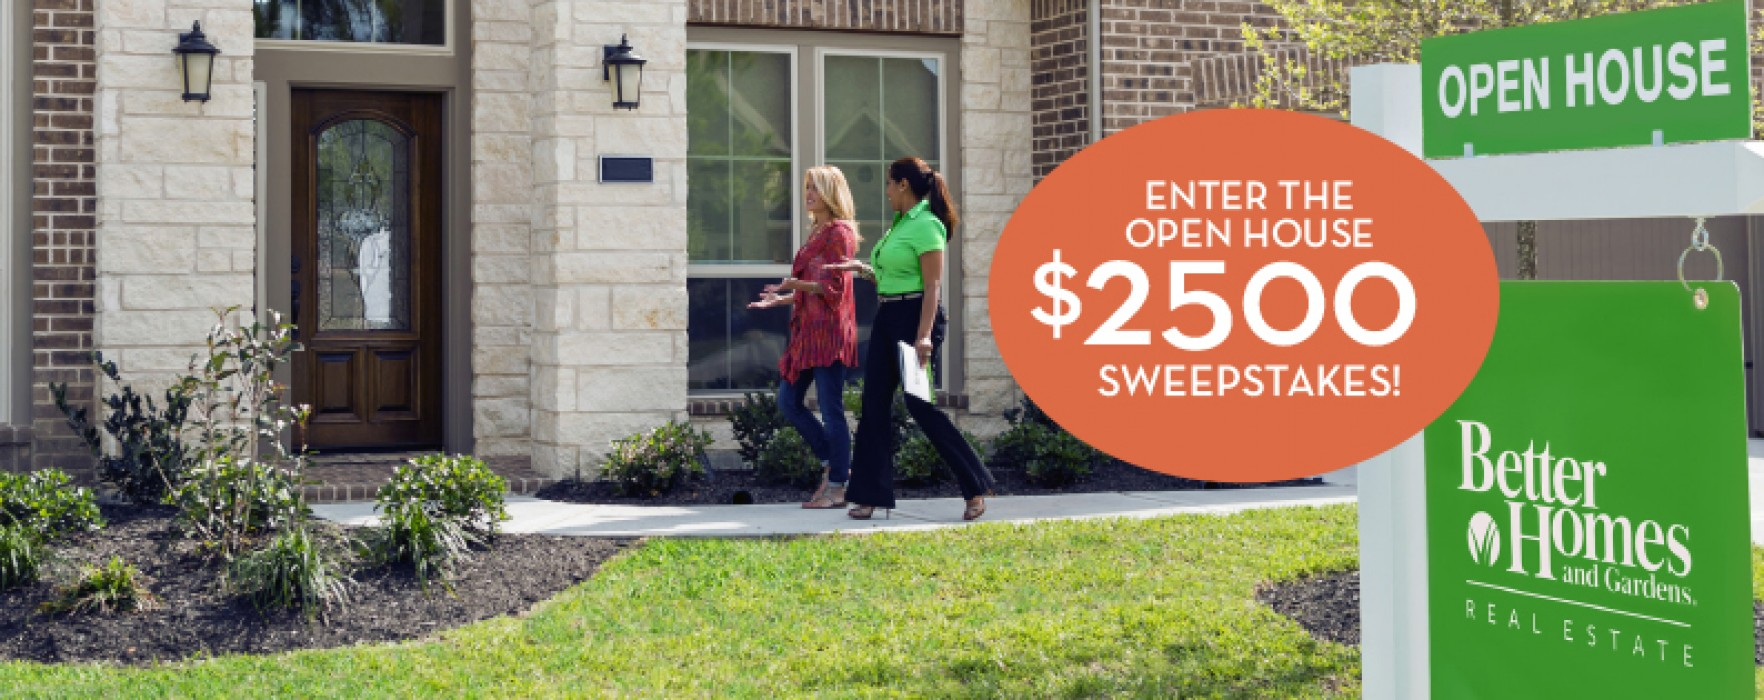 bhgre open house sweepstakes 2015 - Better Home And Garden